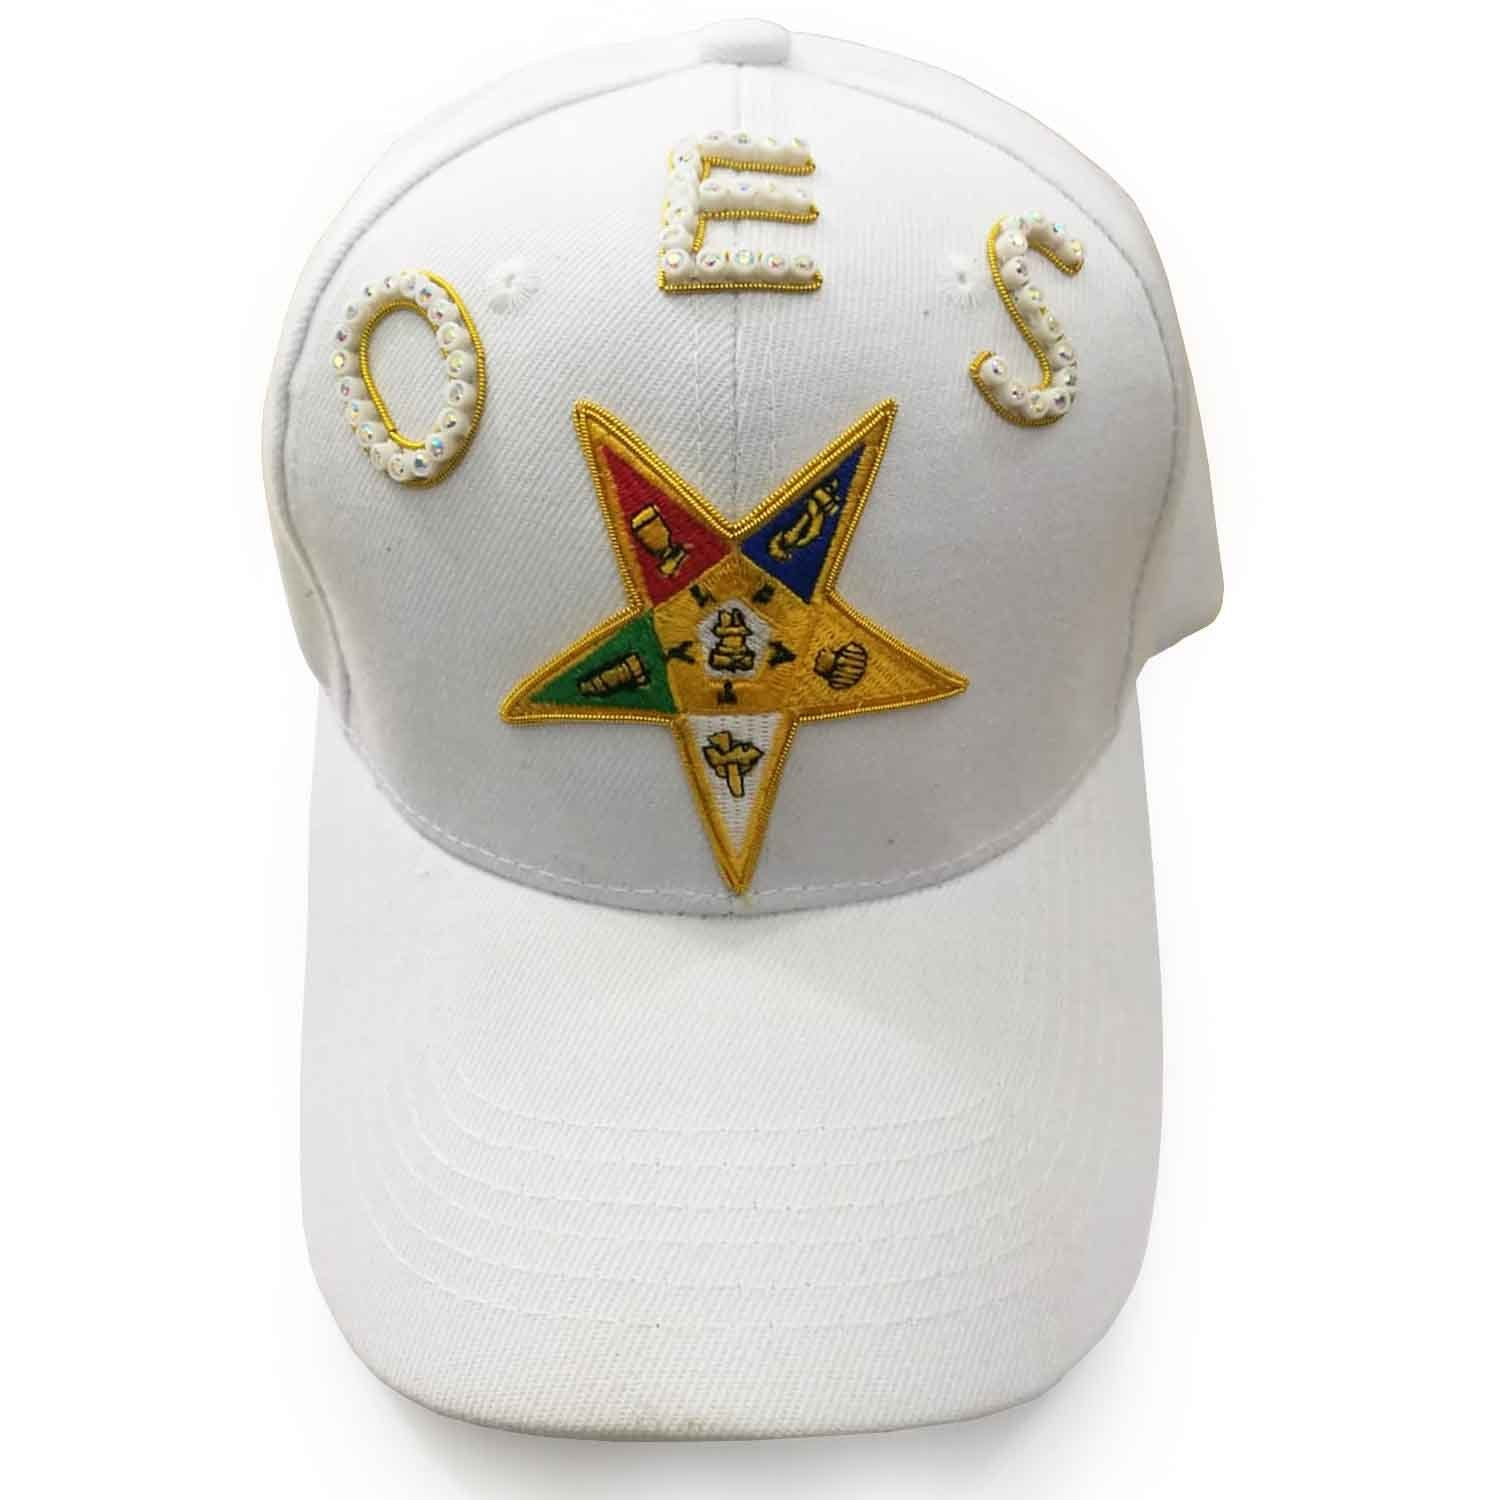 OES Order of the Eastern Star White Baseball Cap